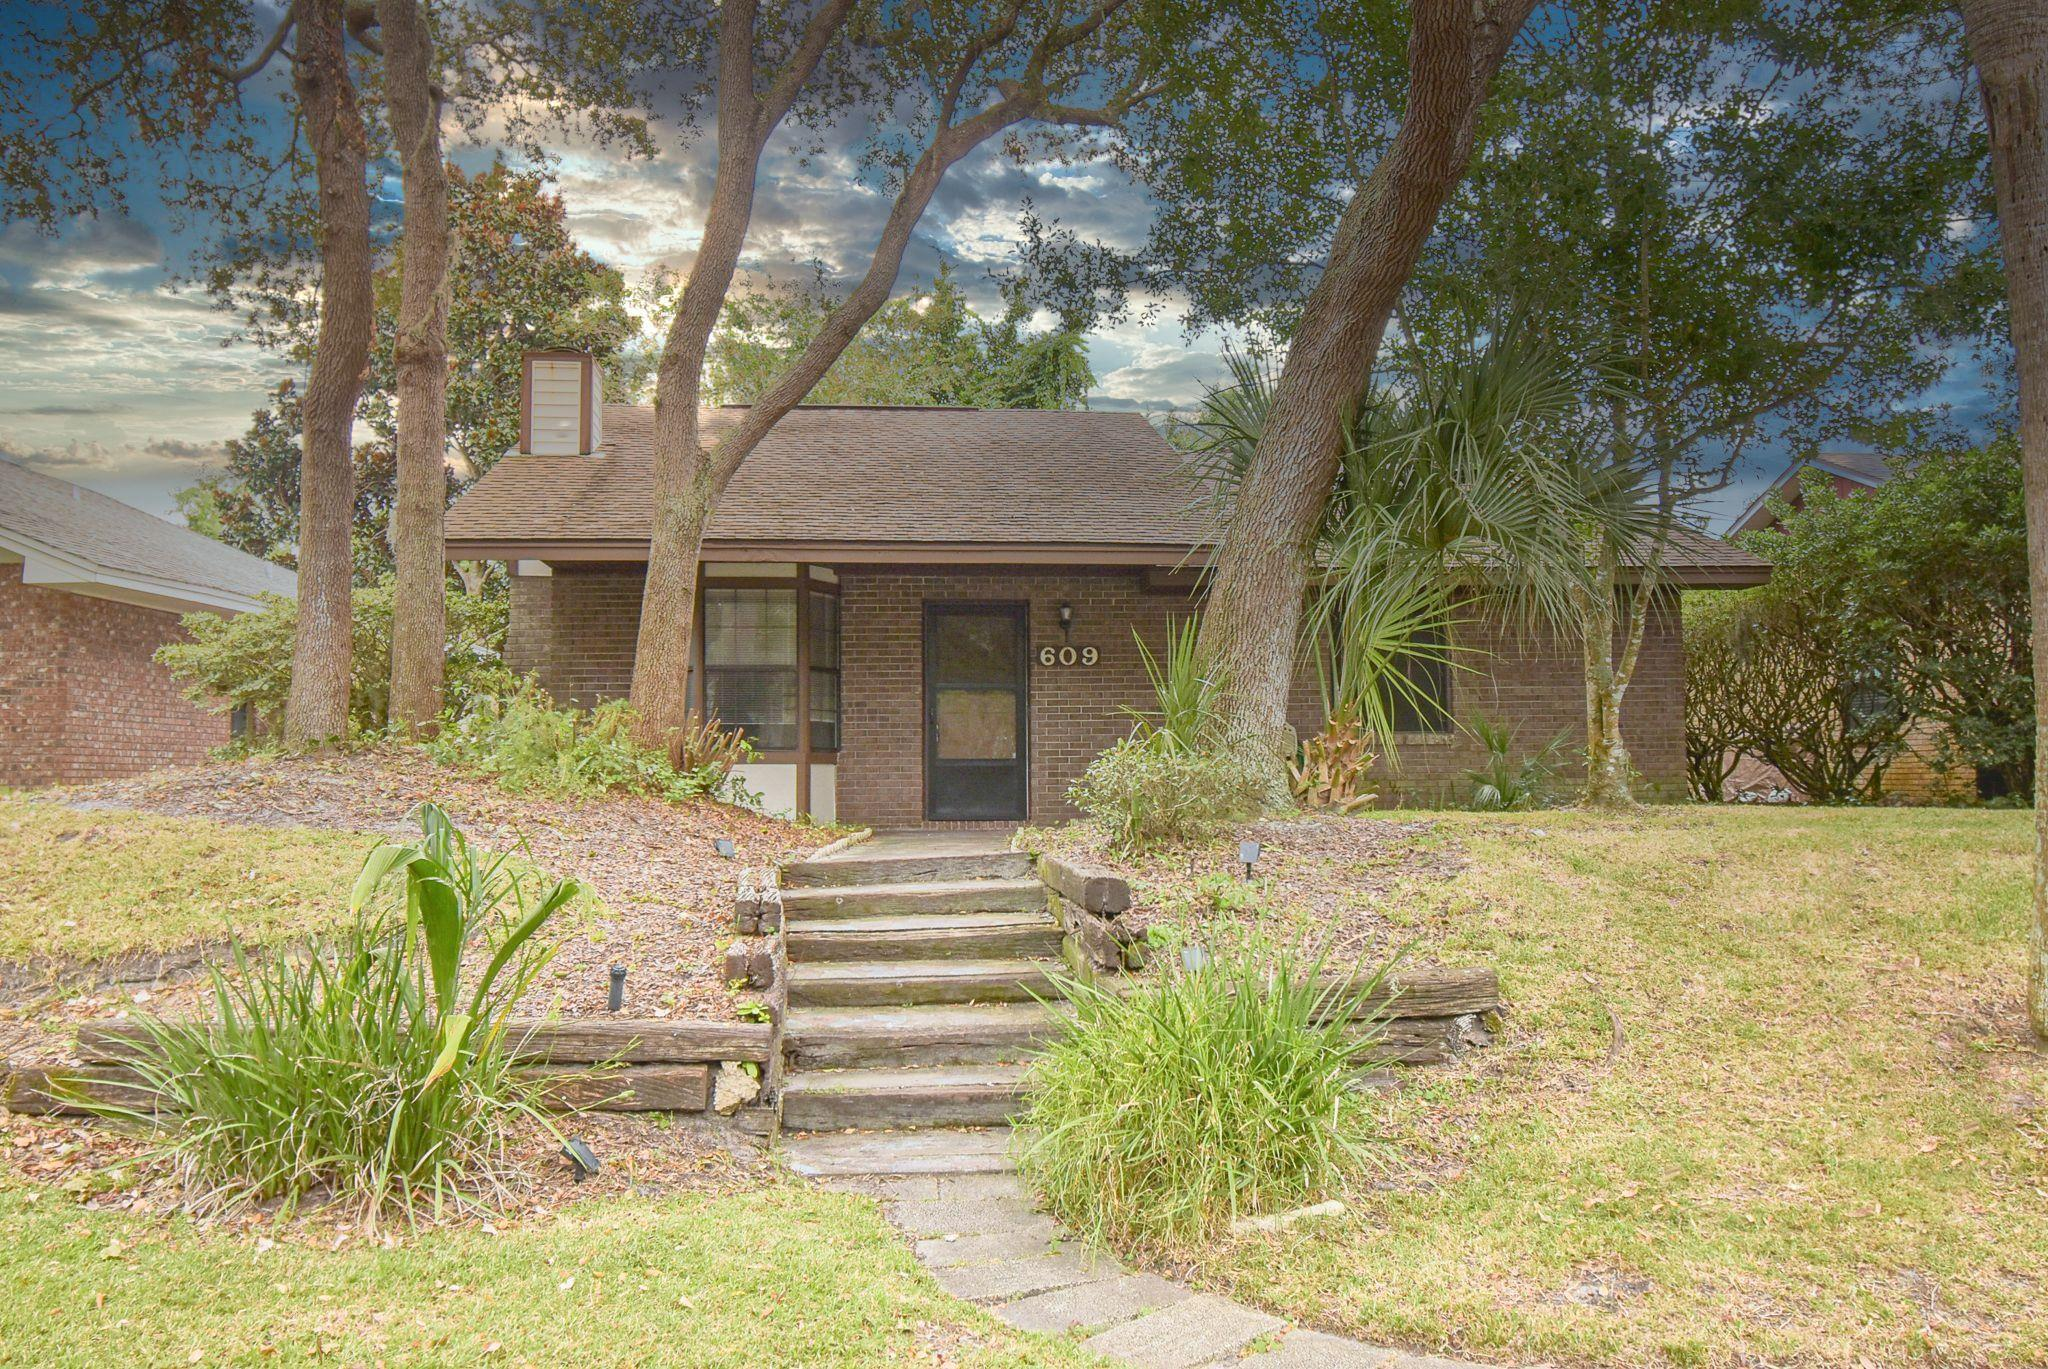 Adorable, private brick bungalow with open floor plan located on the Island. The screened in porch is a peaceful area for drinking your coffee/cocktail.  There is also a fireplace for warming up on those chilly Florida winter nights. HOA takes care of the pool and lawn maintenance. High lot and never flooded.  The neighborhood has a back gate for access to the beach which is 7 blocks away.